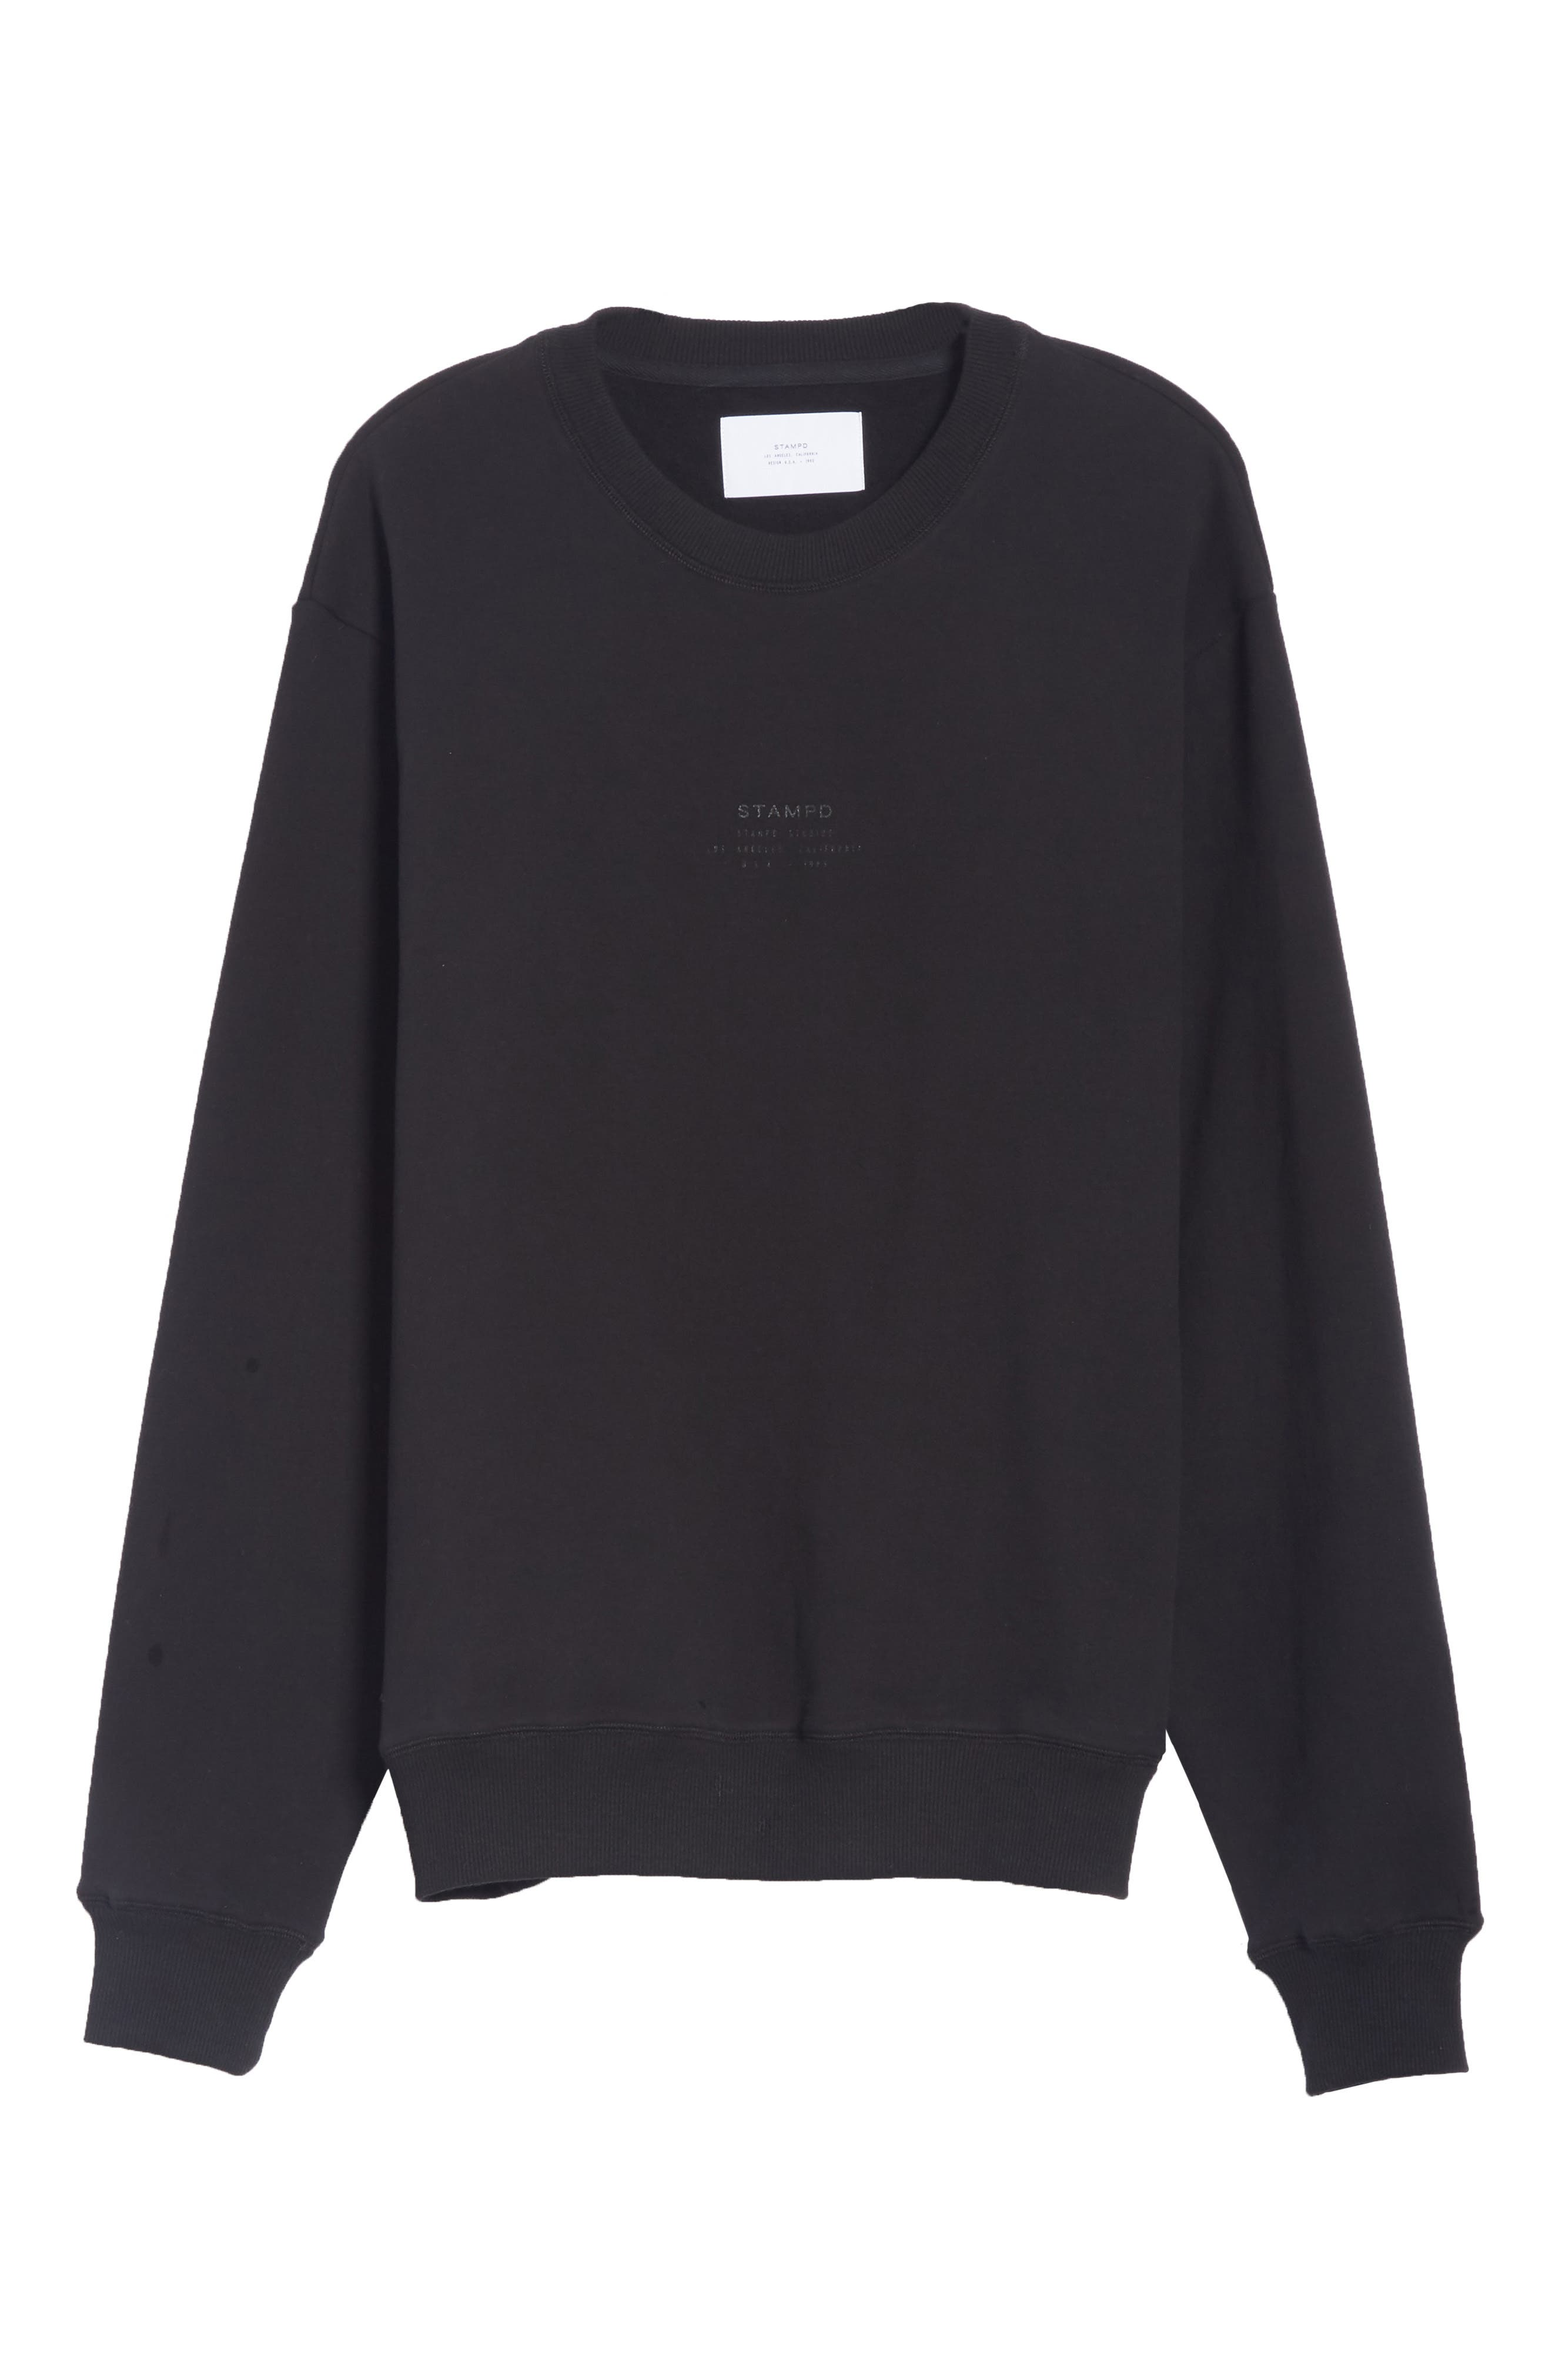 Crewneck Sweatshirt,                             Alternate thumbnail 6, color,                             BLACK